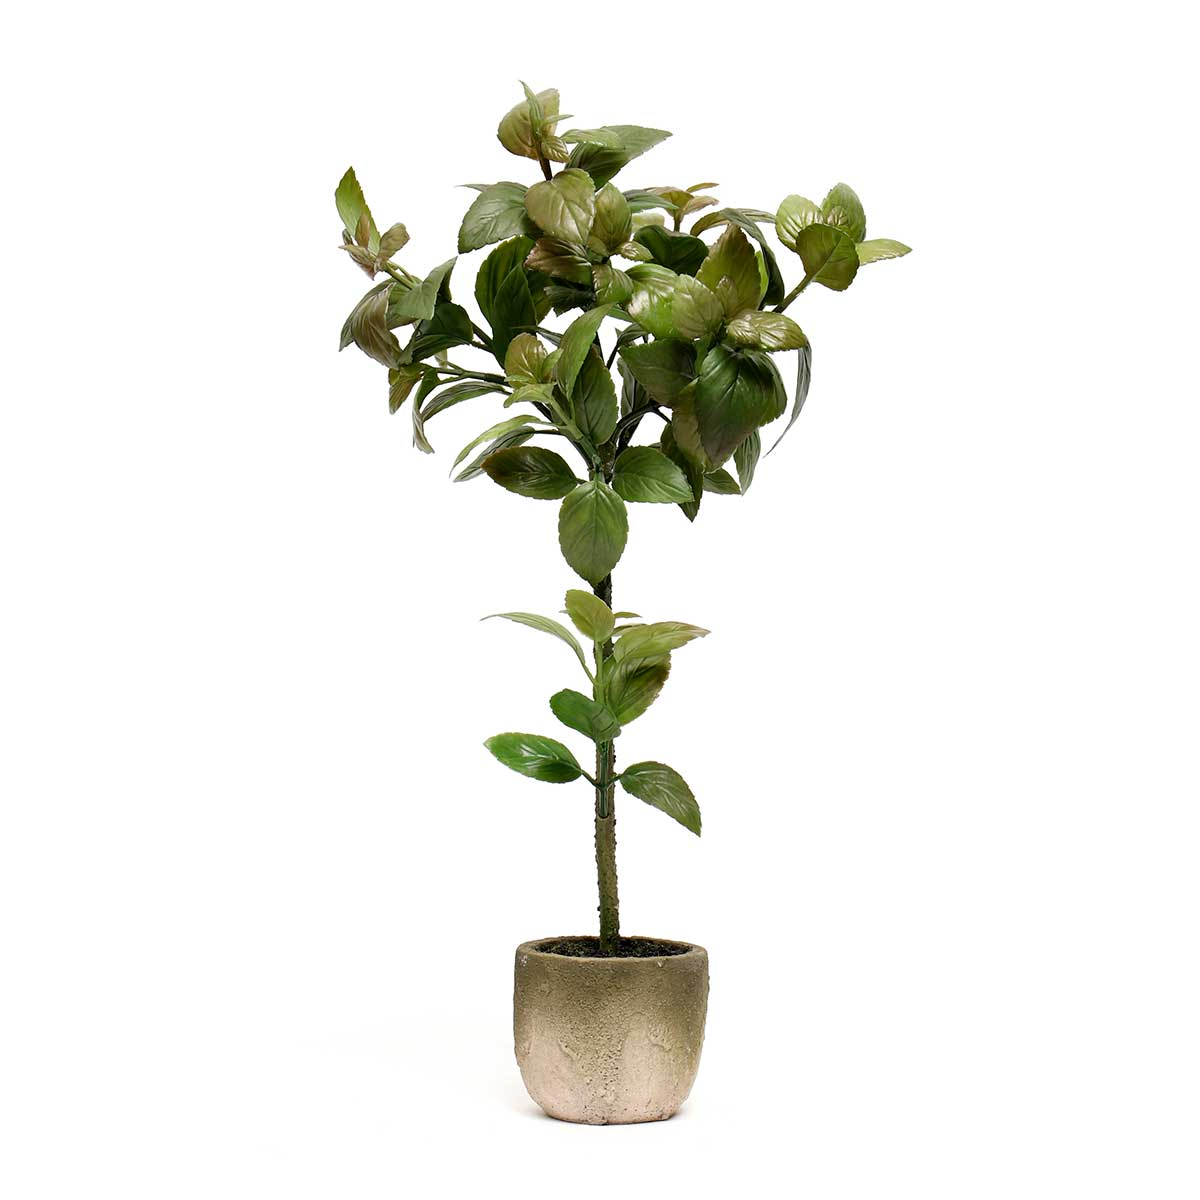 BASIL TREE IN CONCRETE POT